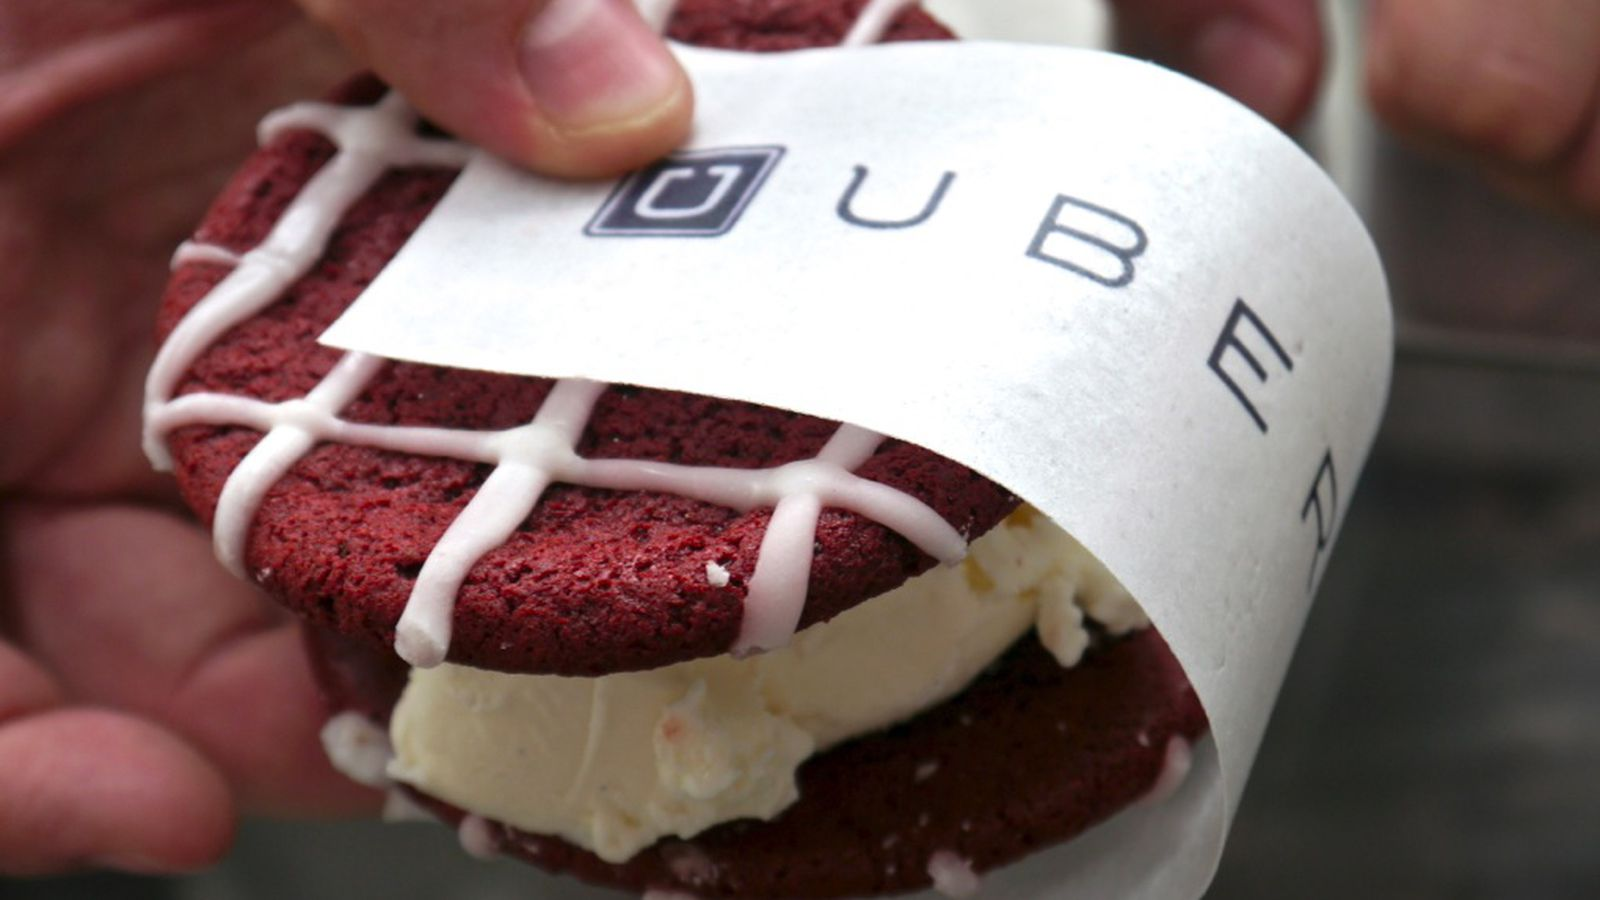 Uber S On Demand Ice Cream Truck Visits The Verge The Verge